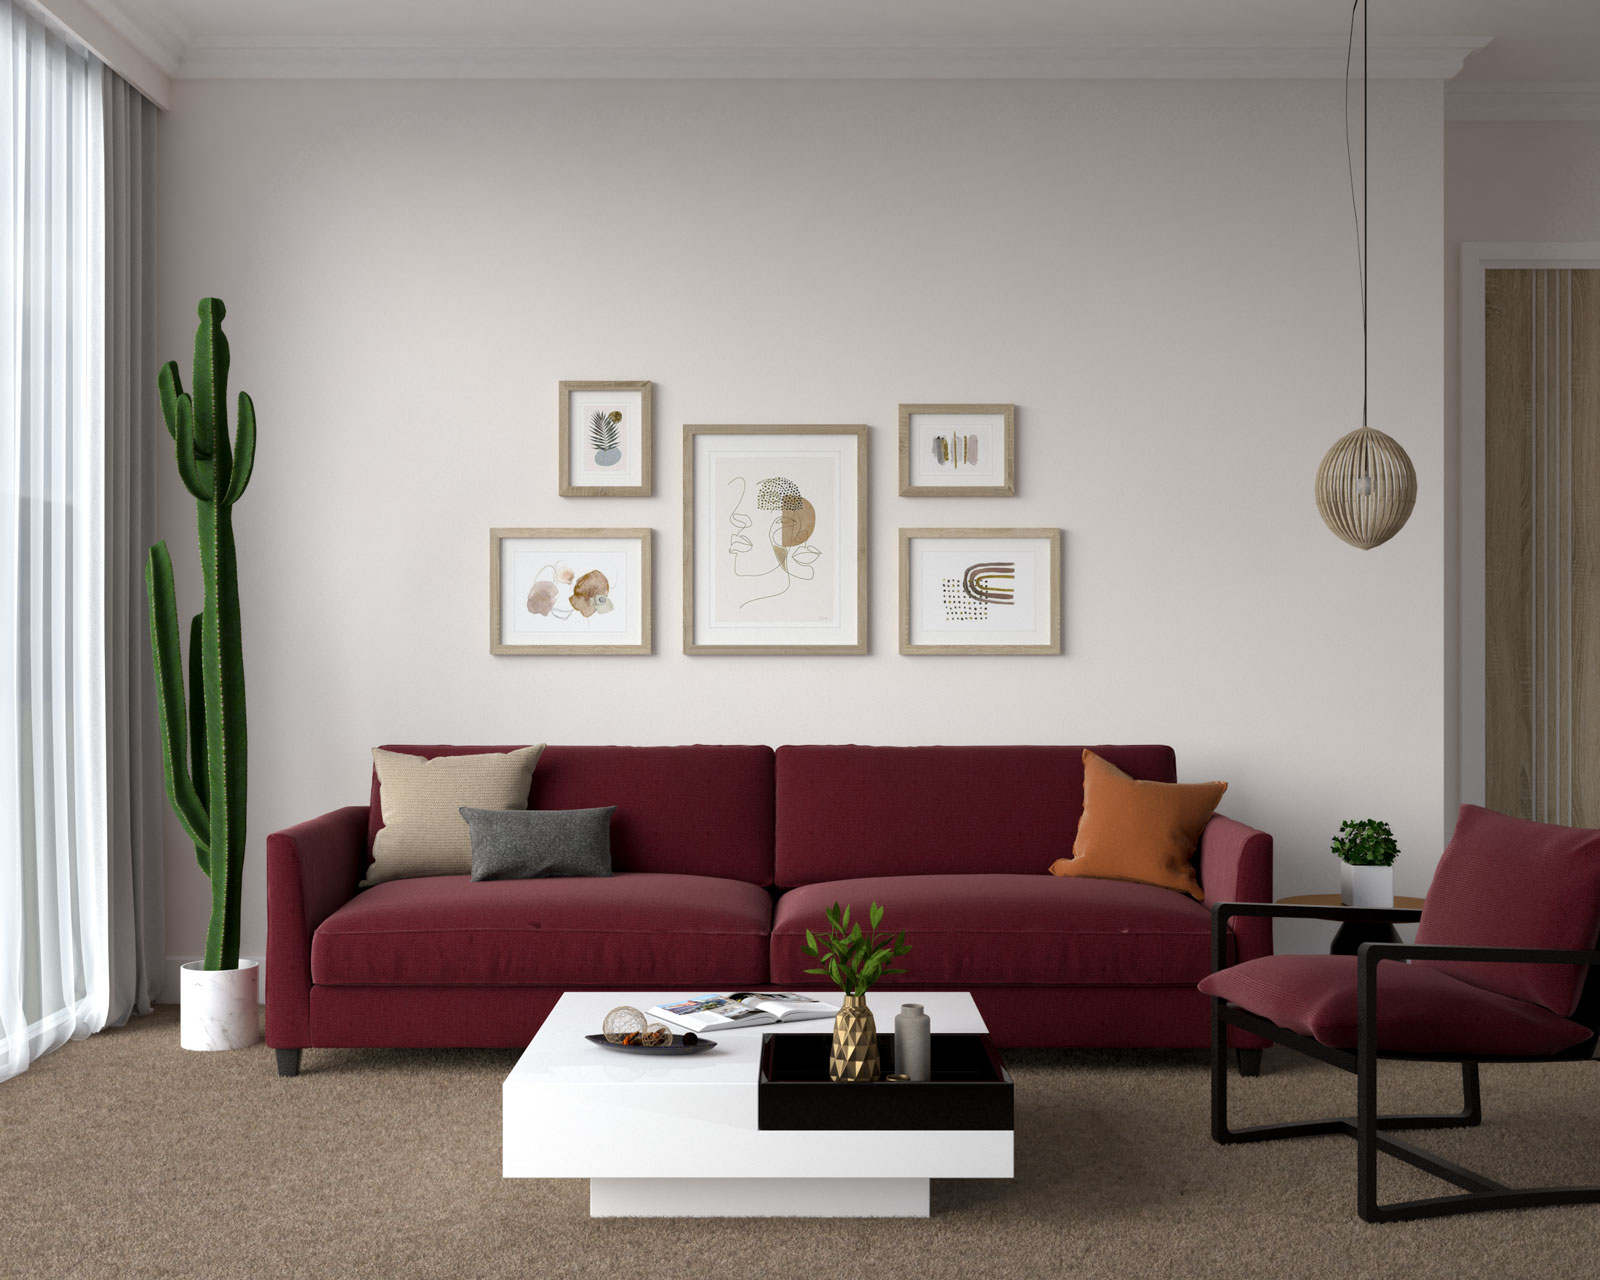 Burgundy couch with brown carpet flooring